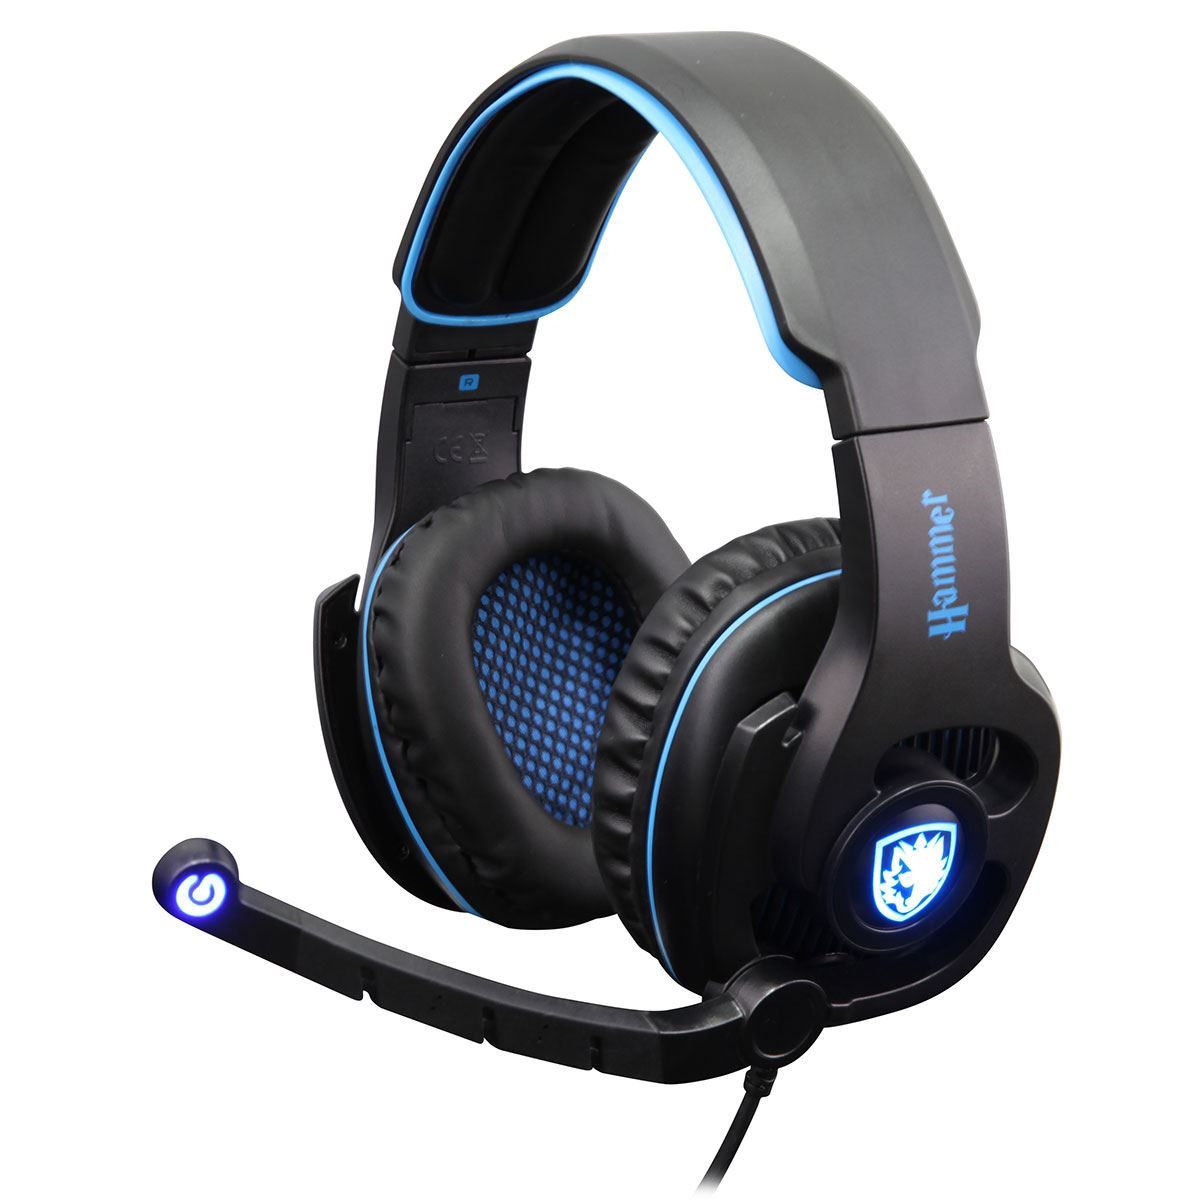 Details About SADES SA 923 Hammer Gaming Headset Blue Virtual 71 Surround Sound 50mm Driver